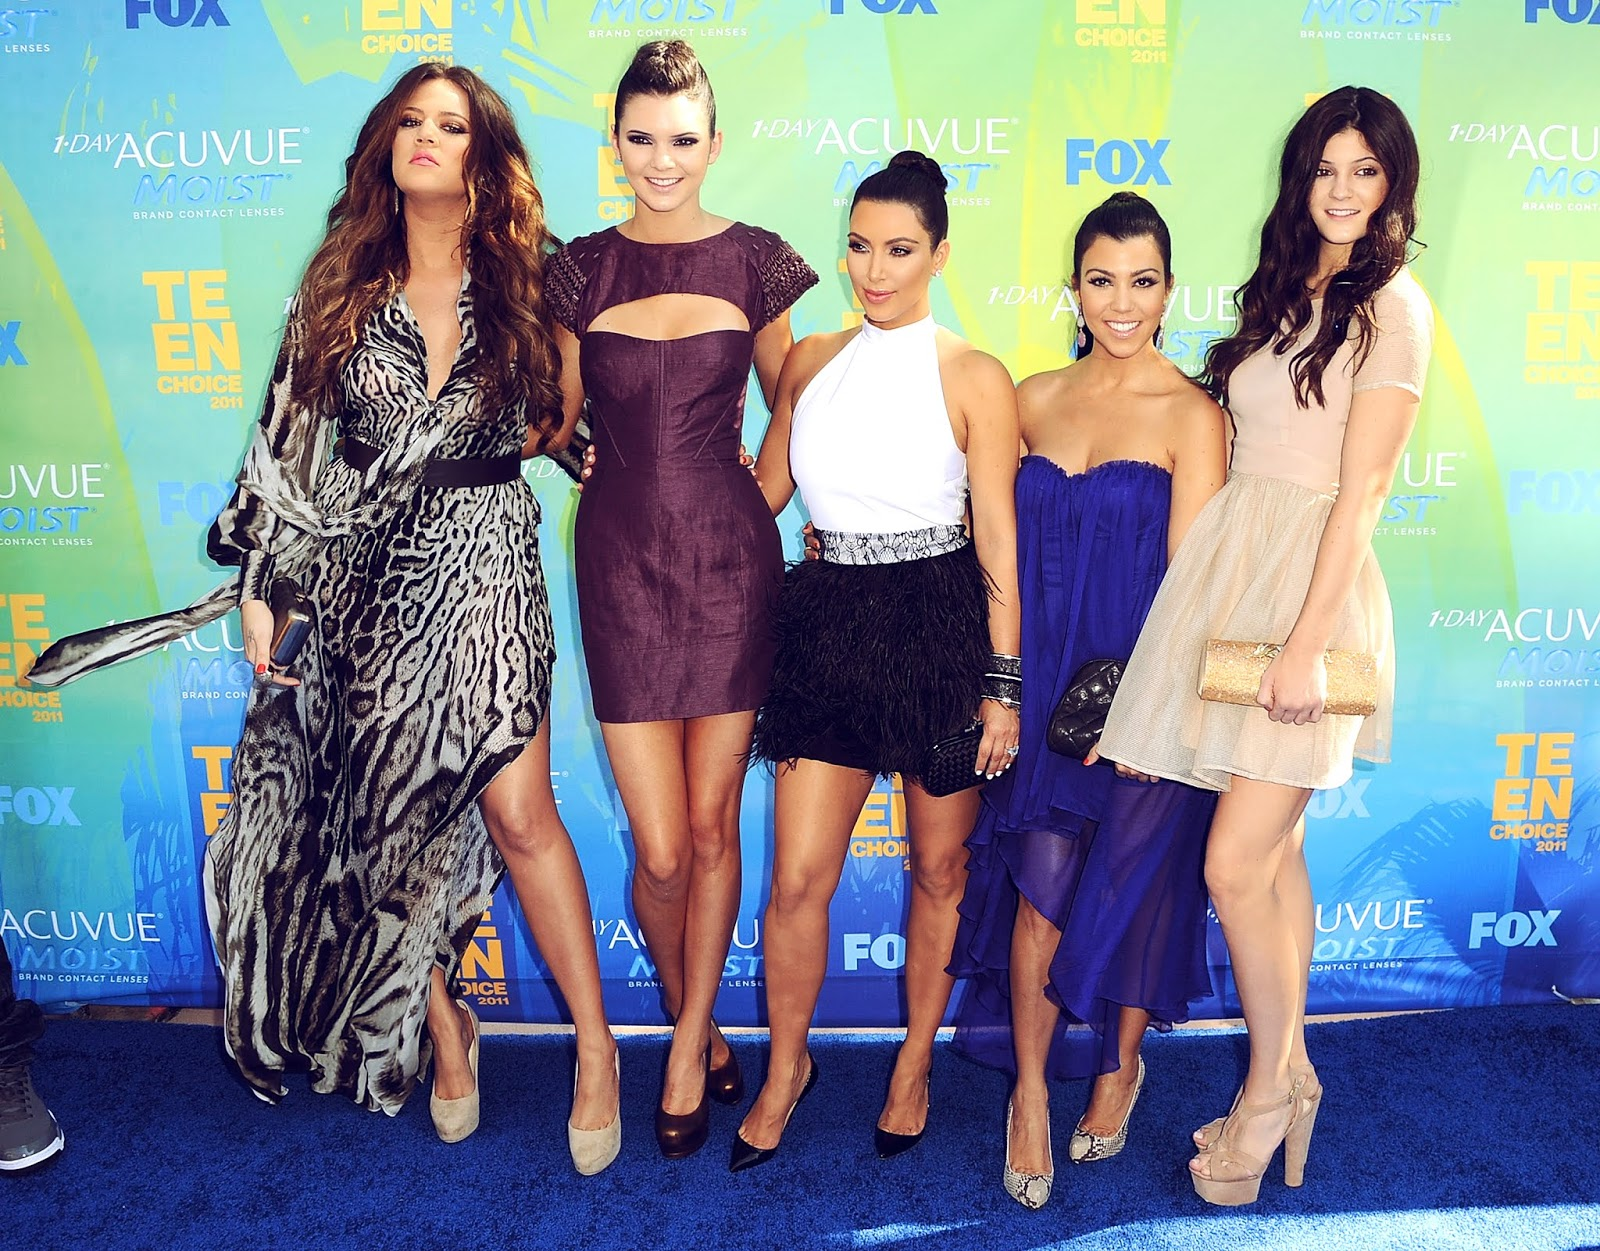 36 - Teen Choice Awards in August 11, 2011